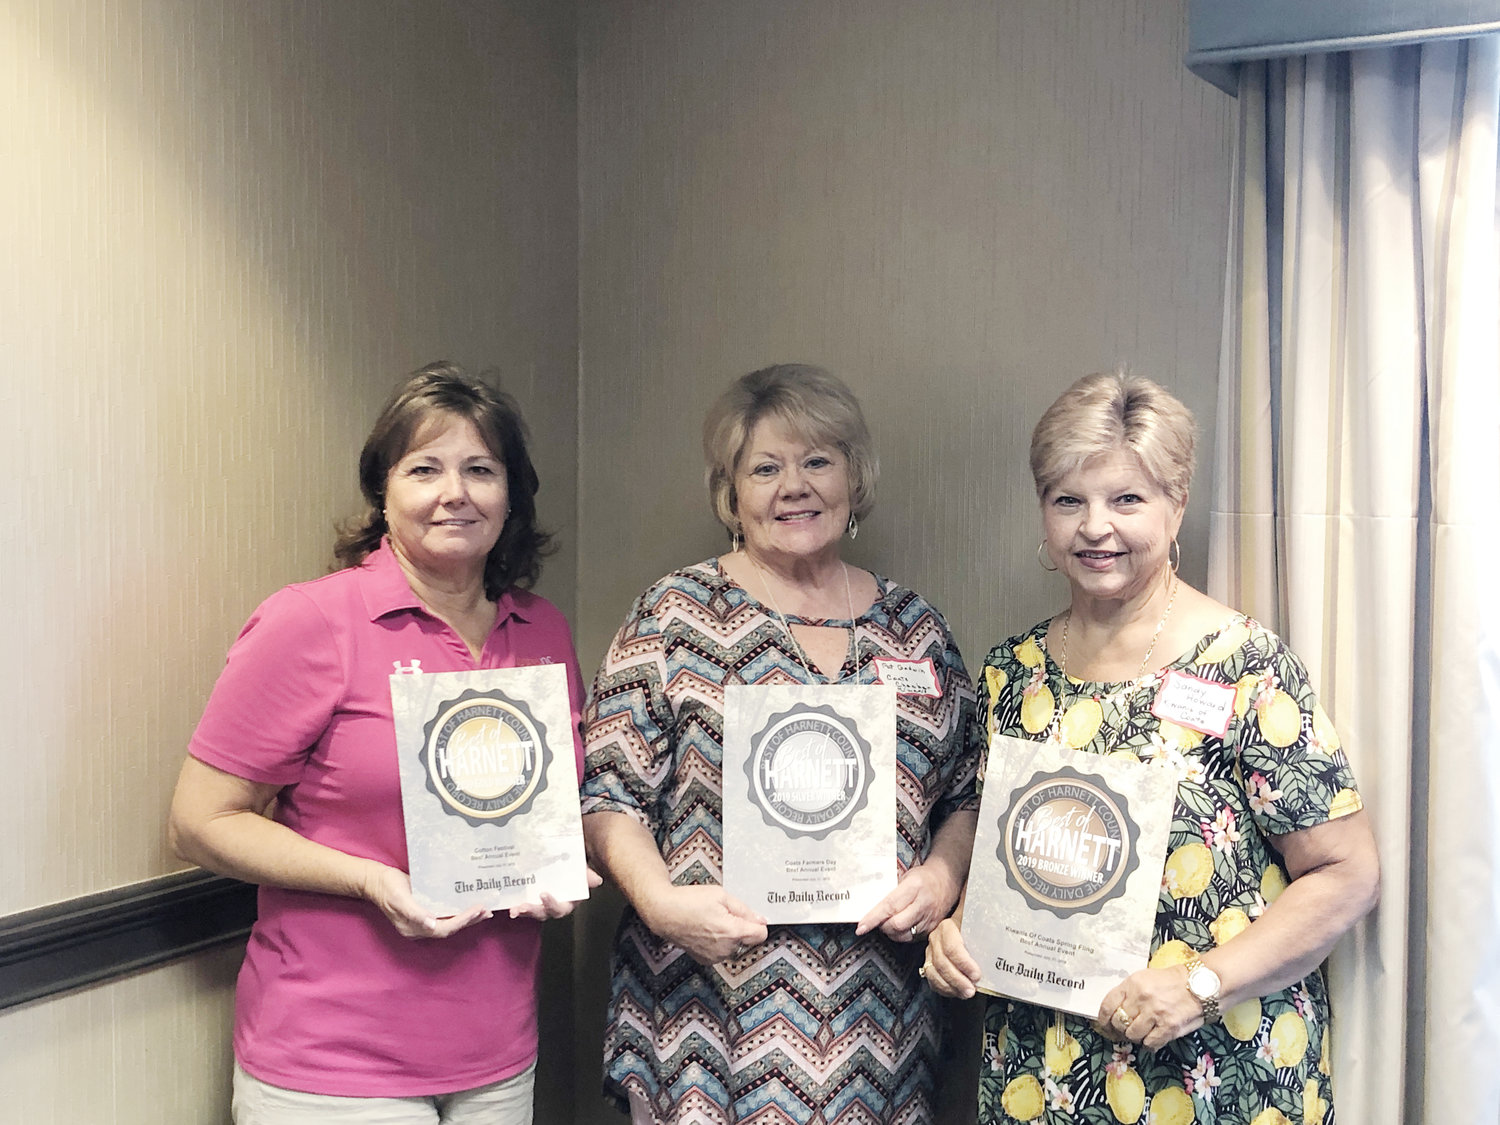 From left, Dunn Tourism Executive Director Sharon Stevens, Pat Godwin of the Coats Chamber of Commerce and Sandy Howard of the Kiwanis of Coats stand with the awards they won in this year's Best of Harnett contest.